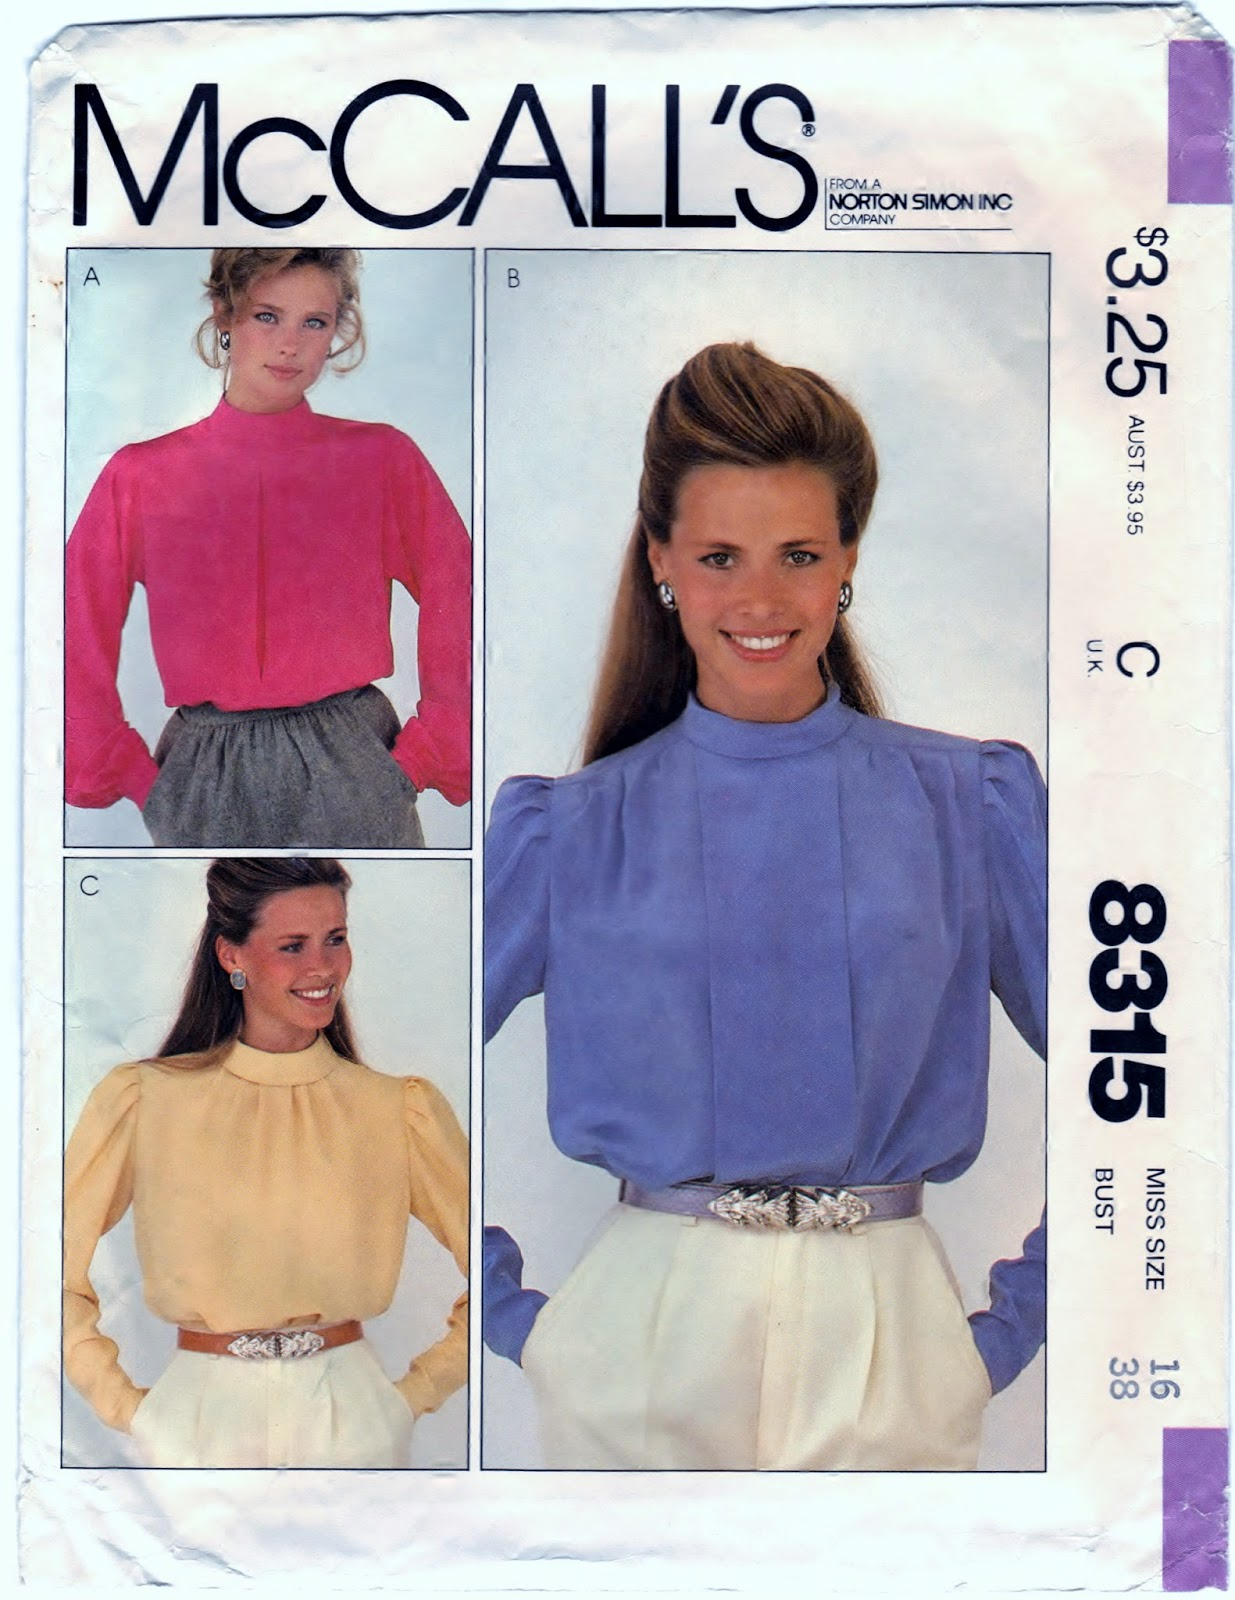 https://www.etsy.com/listing/221922796/vintage-mccalls-8315-sewing-craft